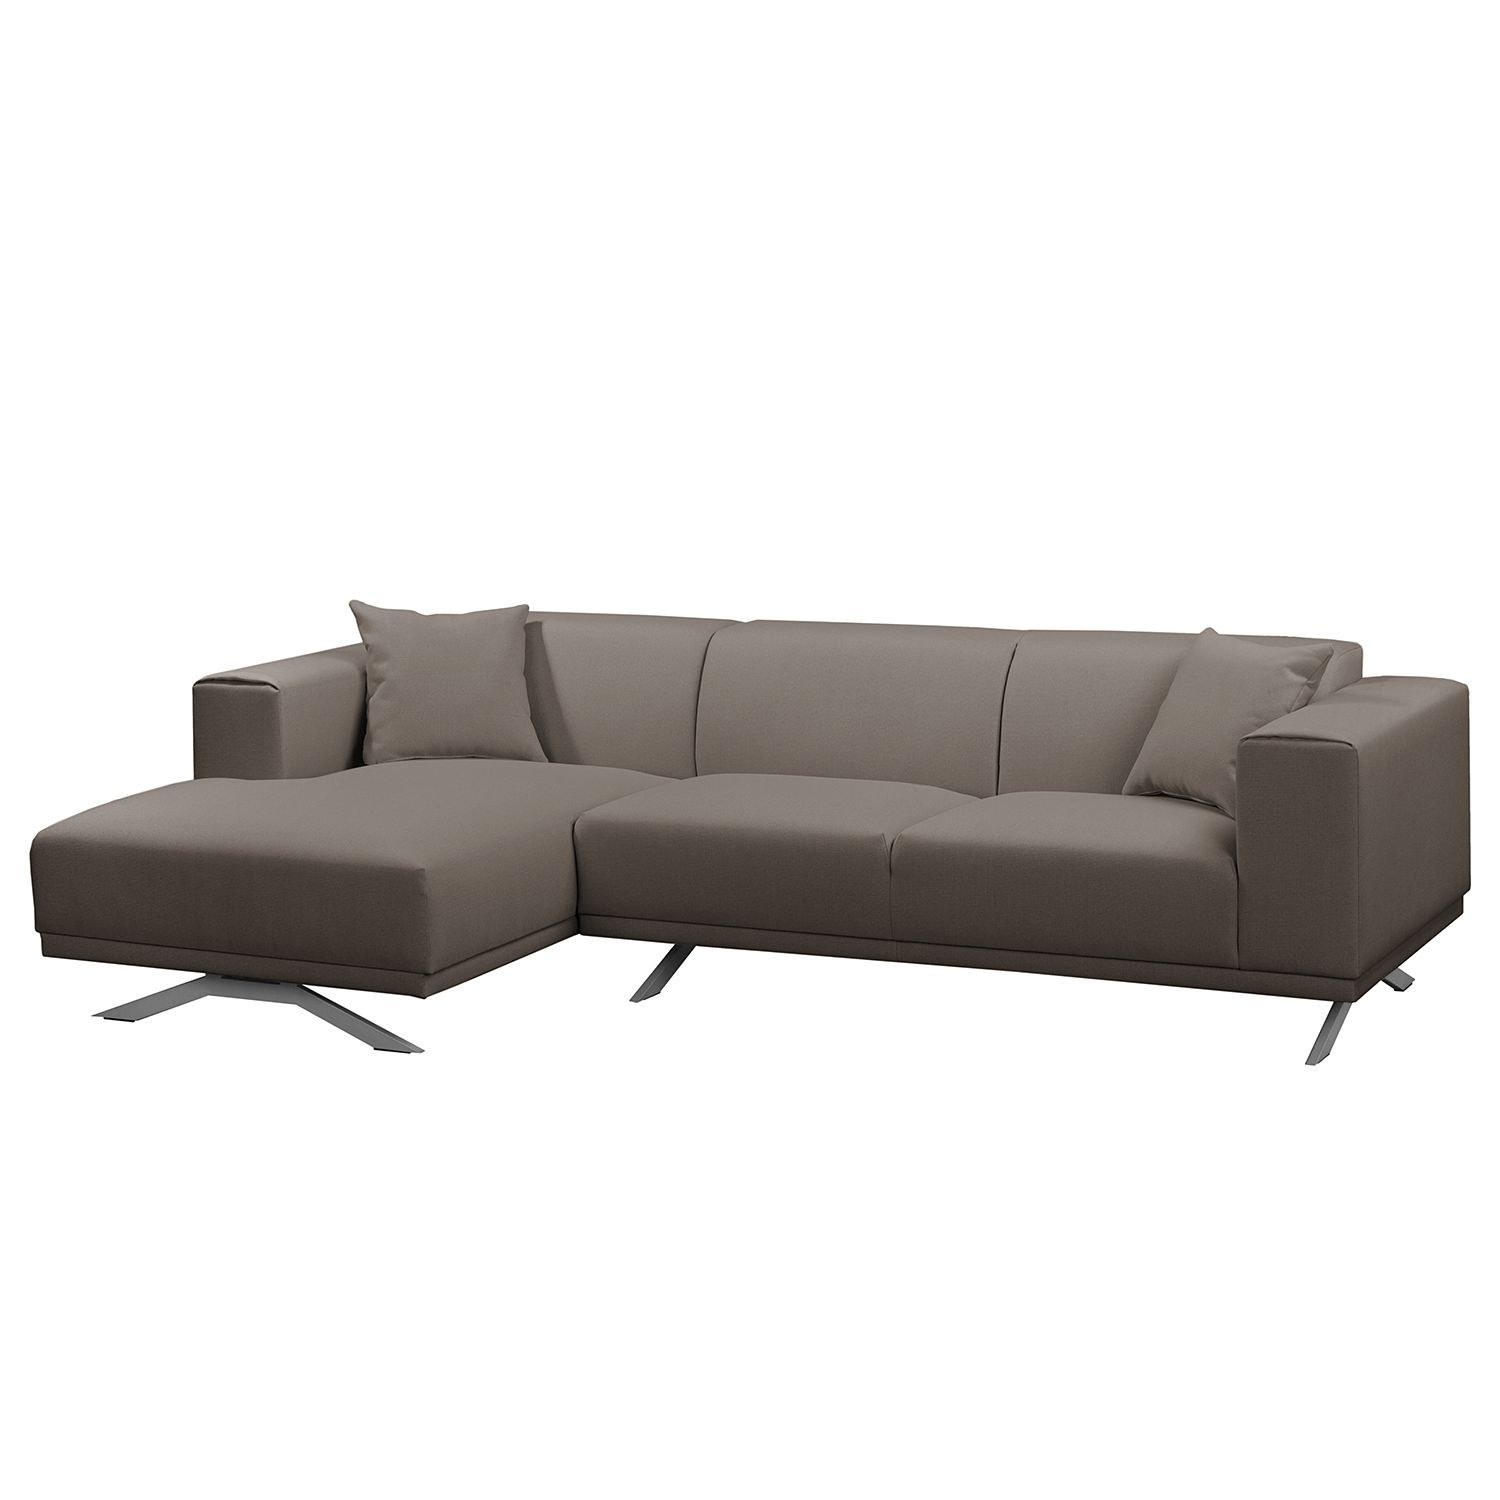 Ecksofa Mit Schlaffunktion Lederimitat Sofa Design Institute Facebook Kunstleder Sofa Kaufen Sofa Sale Online Singapore Co Kunstleder Sofa Ecksofa Sofa